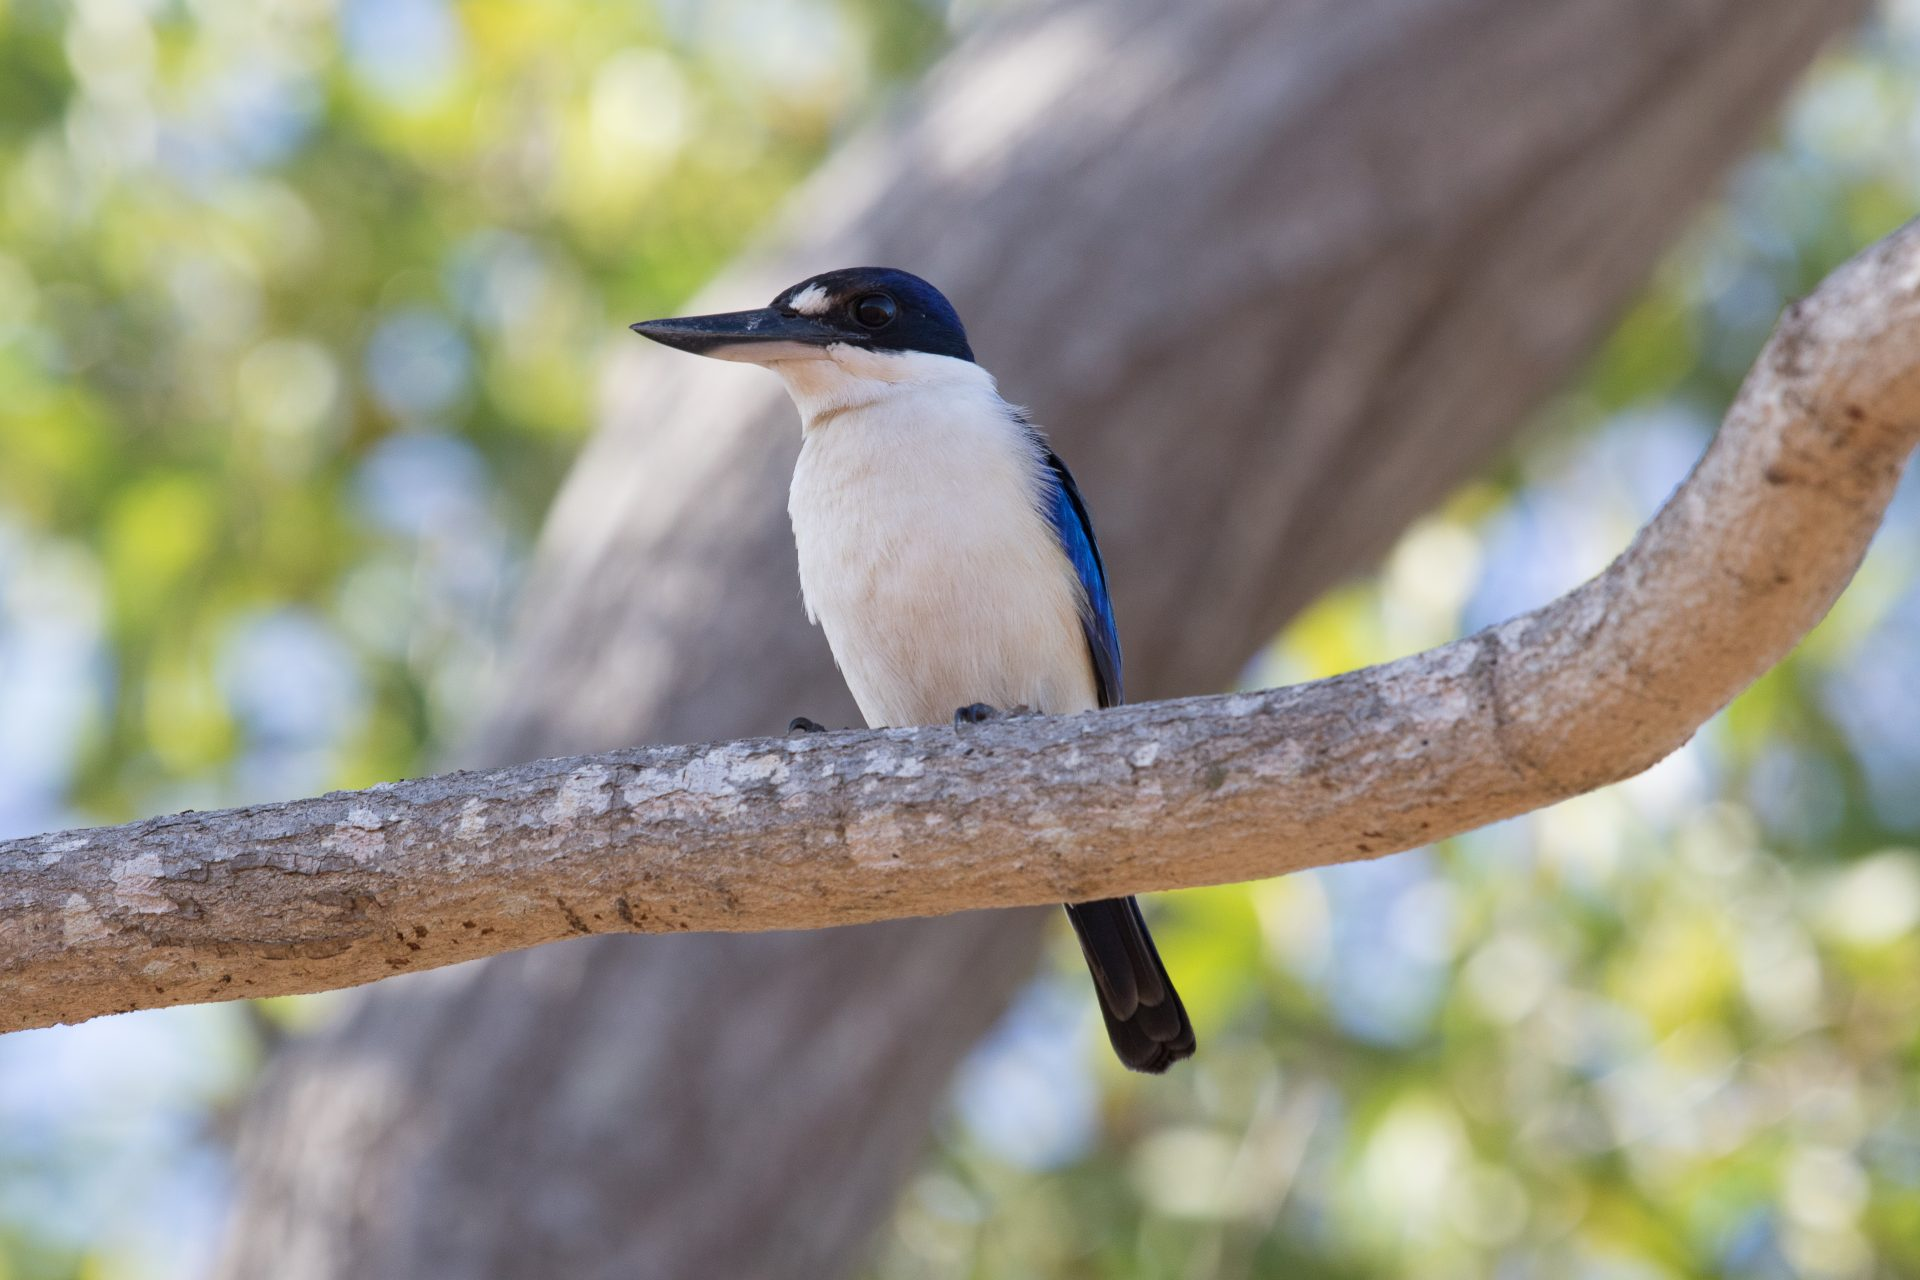 Forest Kingfisher, Darwin, Northern Territory Australia, Apr. 2016